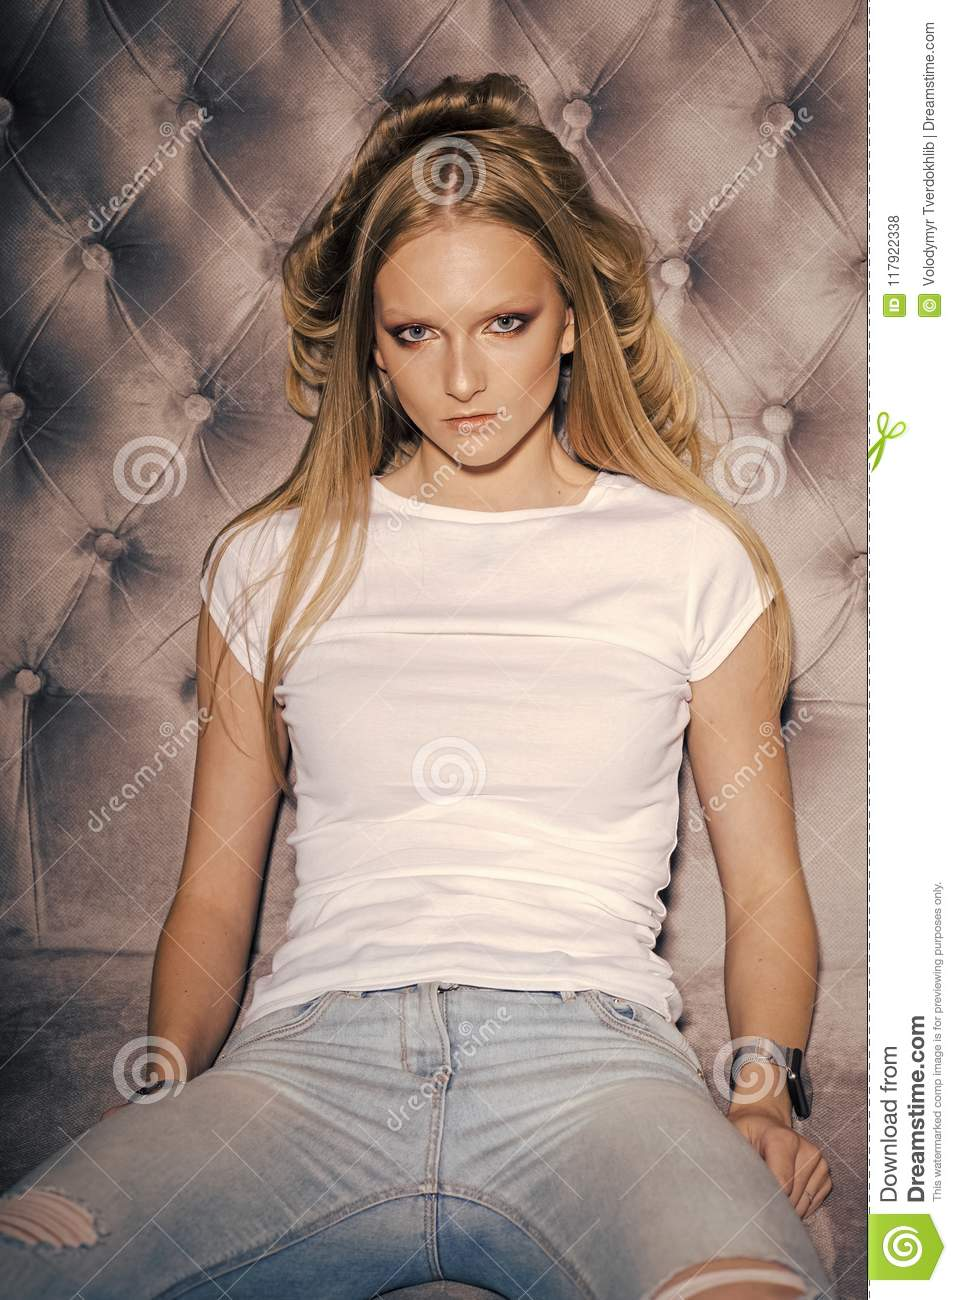 Happy Woman Woman In Tshirt And Jeans Relax On Sofa Fashion Woman